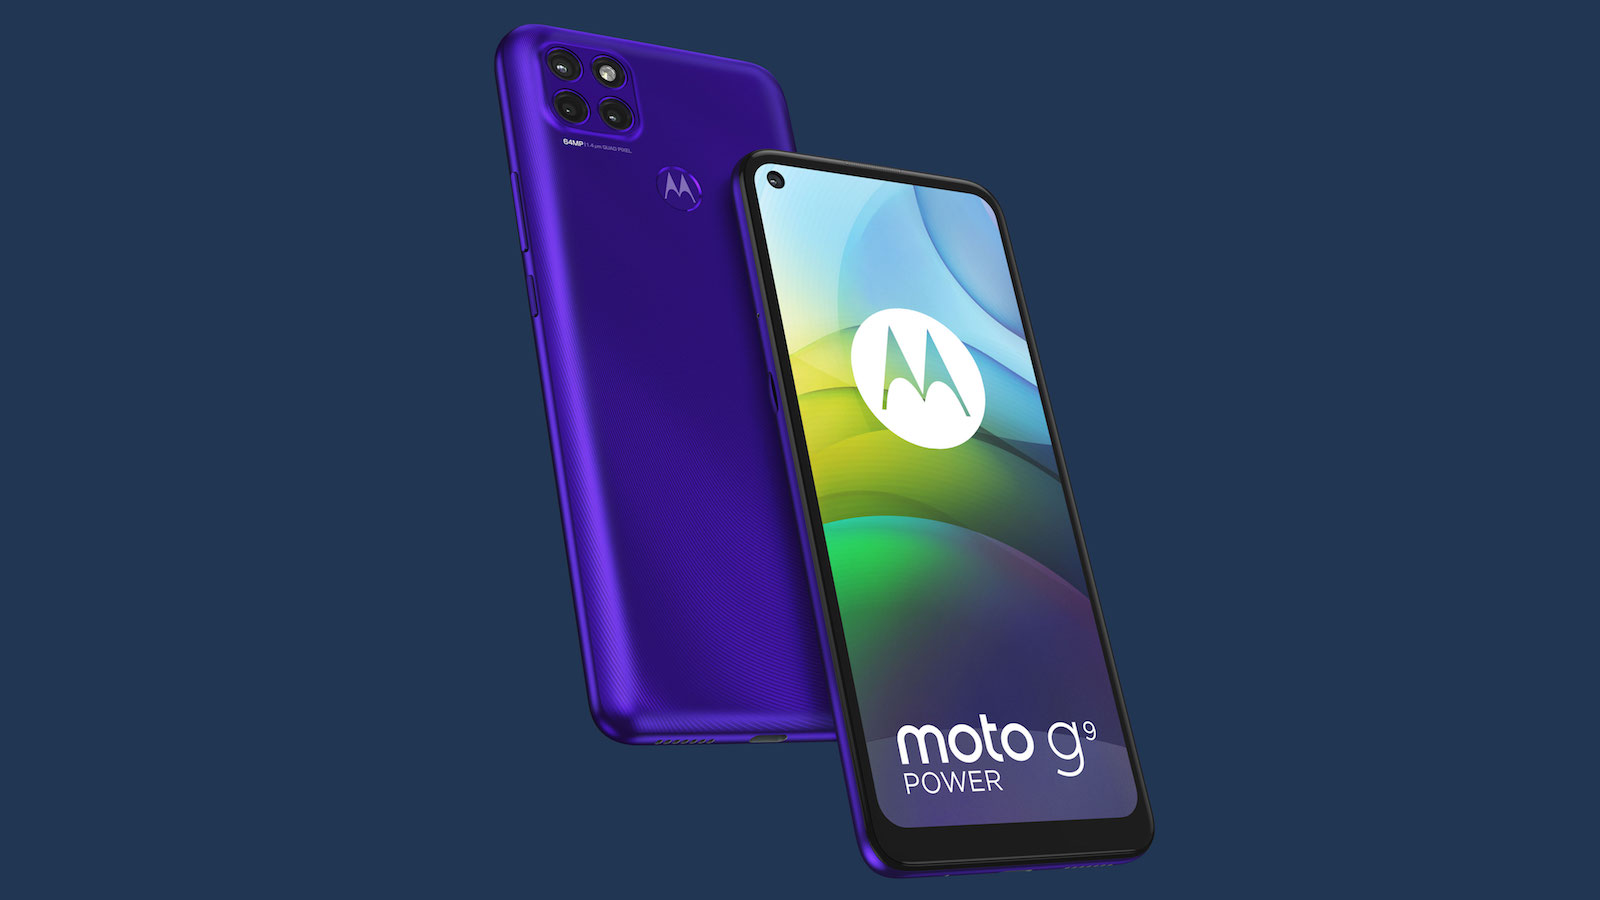 motorola moto g9 power large-battery smartphone has a huge 6,000 mAh battery